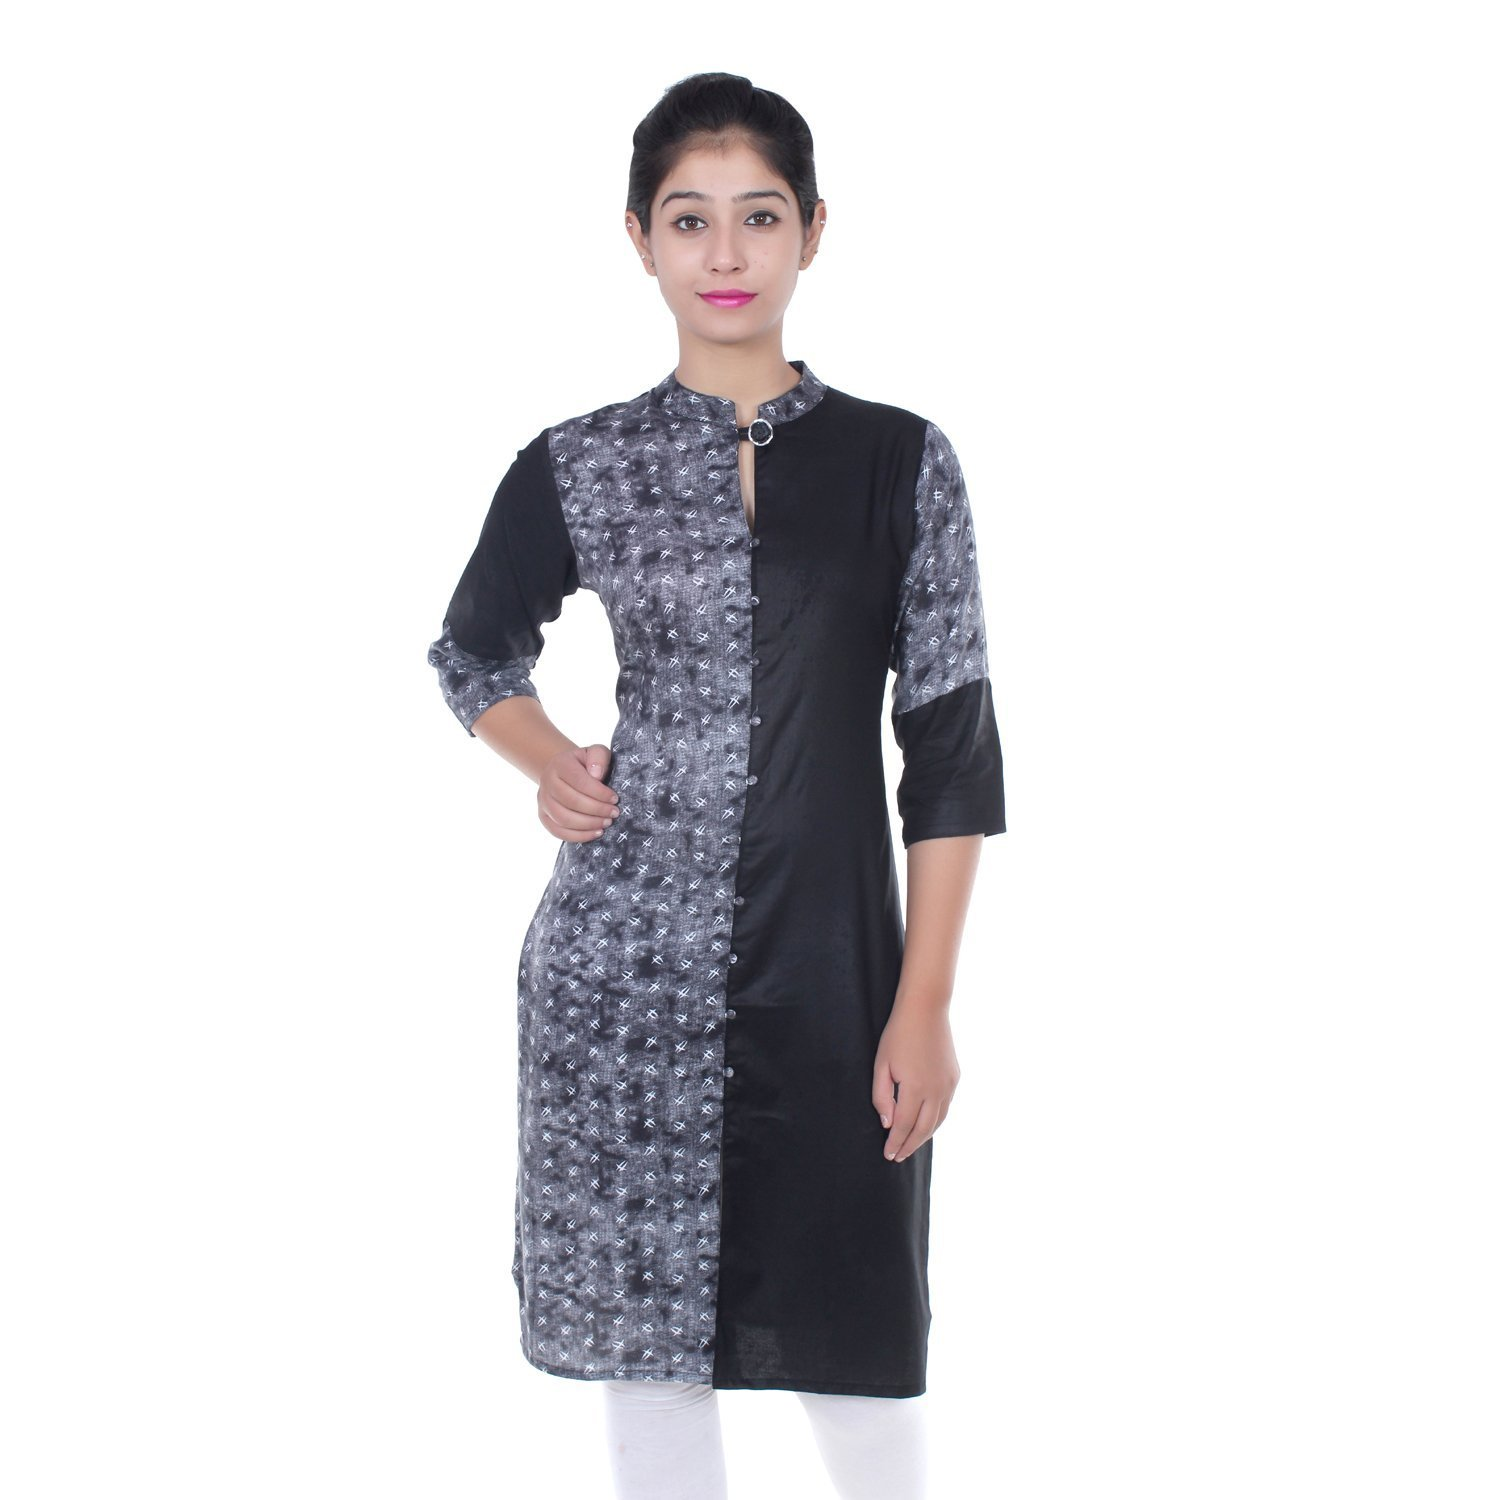 Chichi Indian Women Kurta Kurti 3/4 Sleeve Medium Size Plain with One Side Printed Straight Black-White Top by CHI (Image #1)